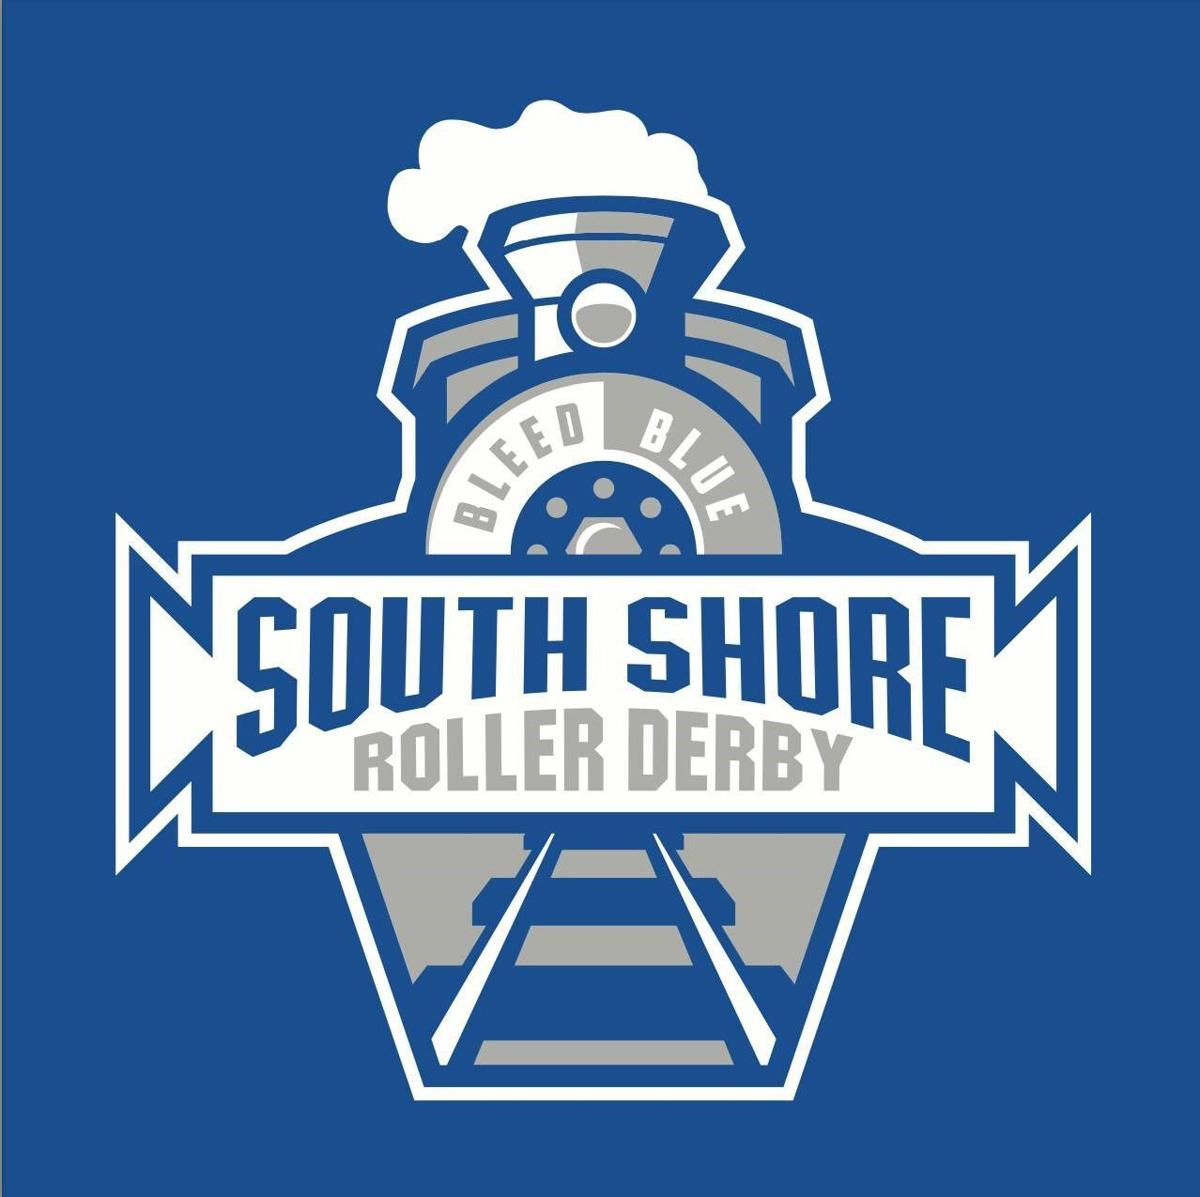 South Shore Roller Girls rebrands as South Shore Roller Derby to be more inclusive